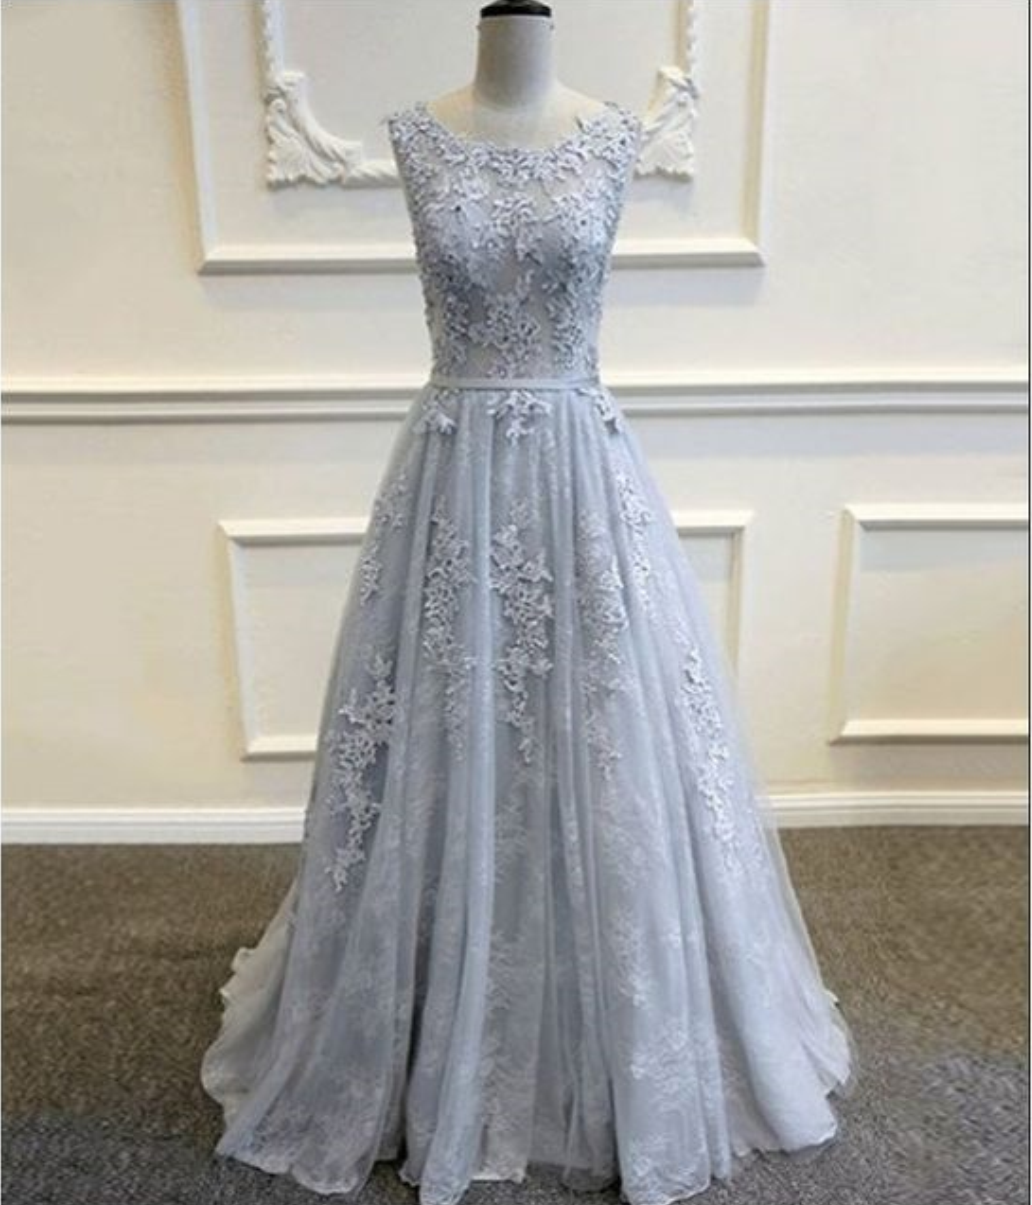 Short Grey Prom Dresses hd photo